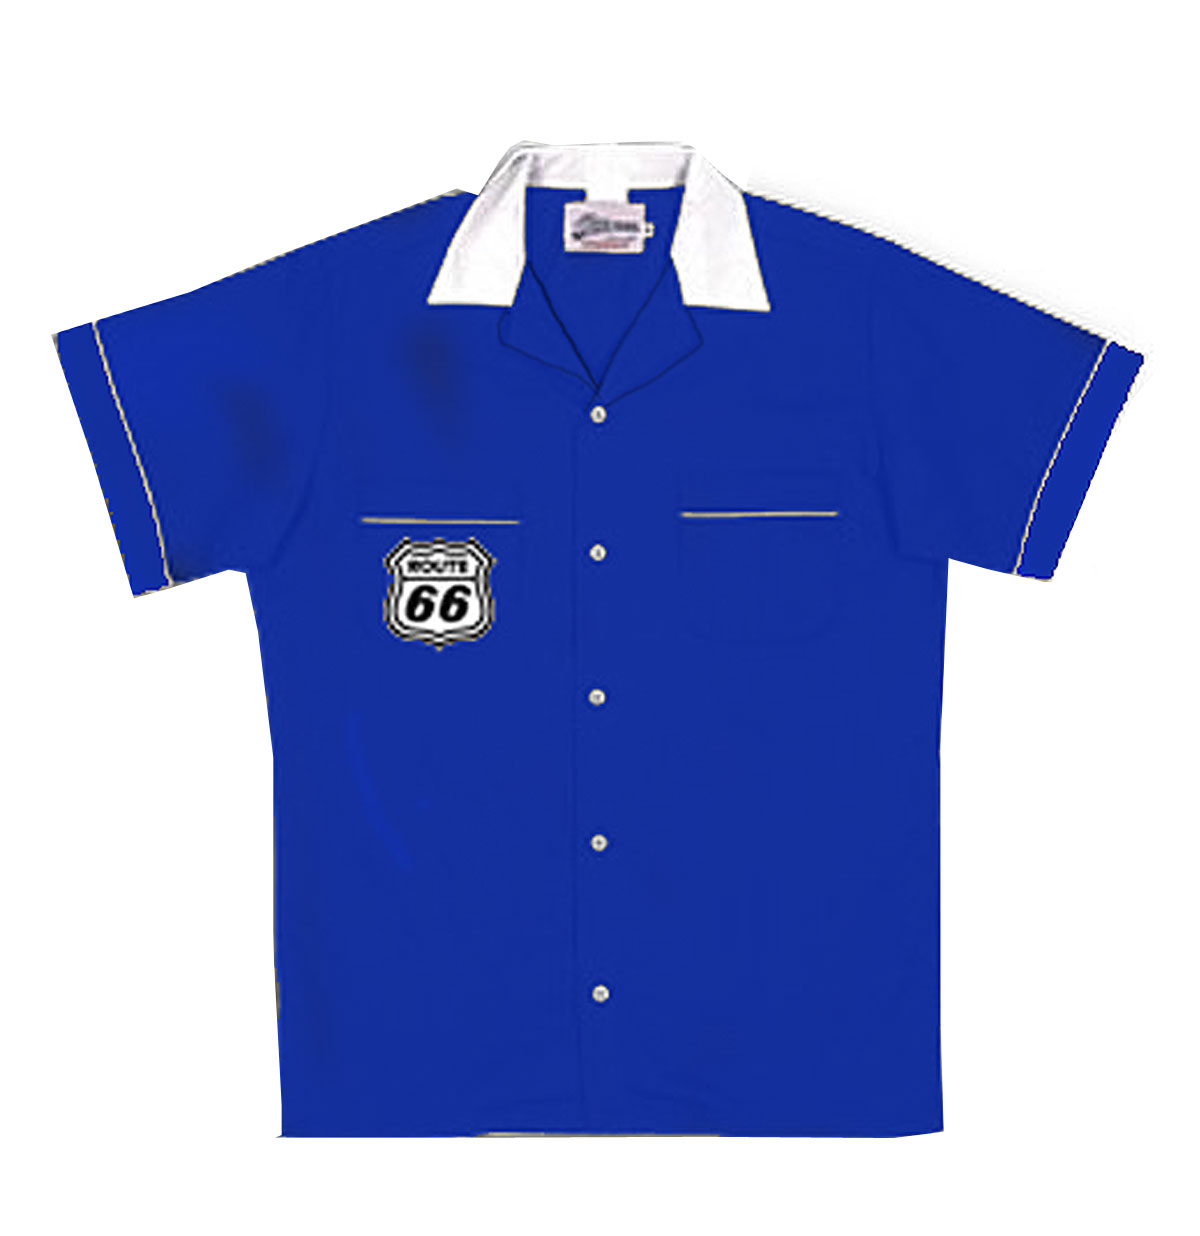 Bowling Shirt Route 66 Blauw / Wit